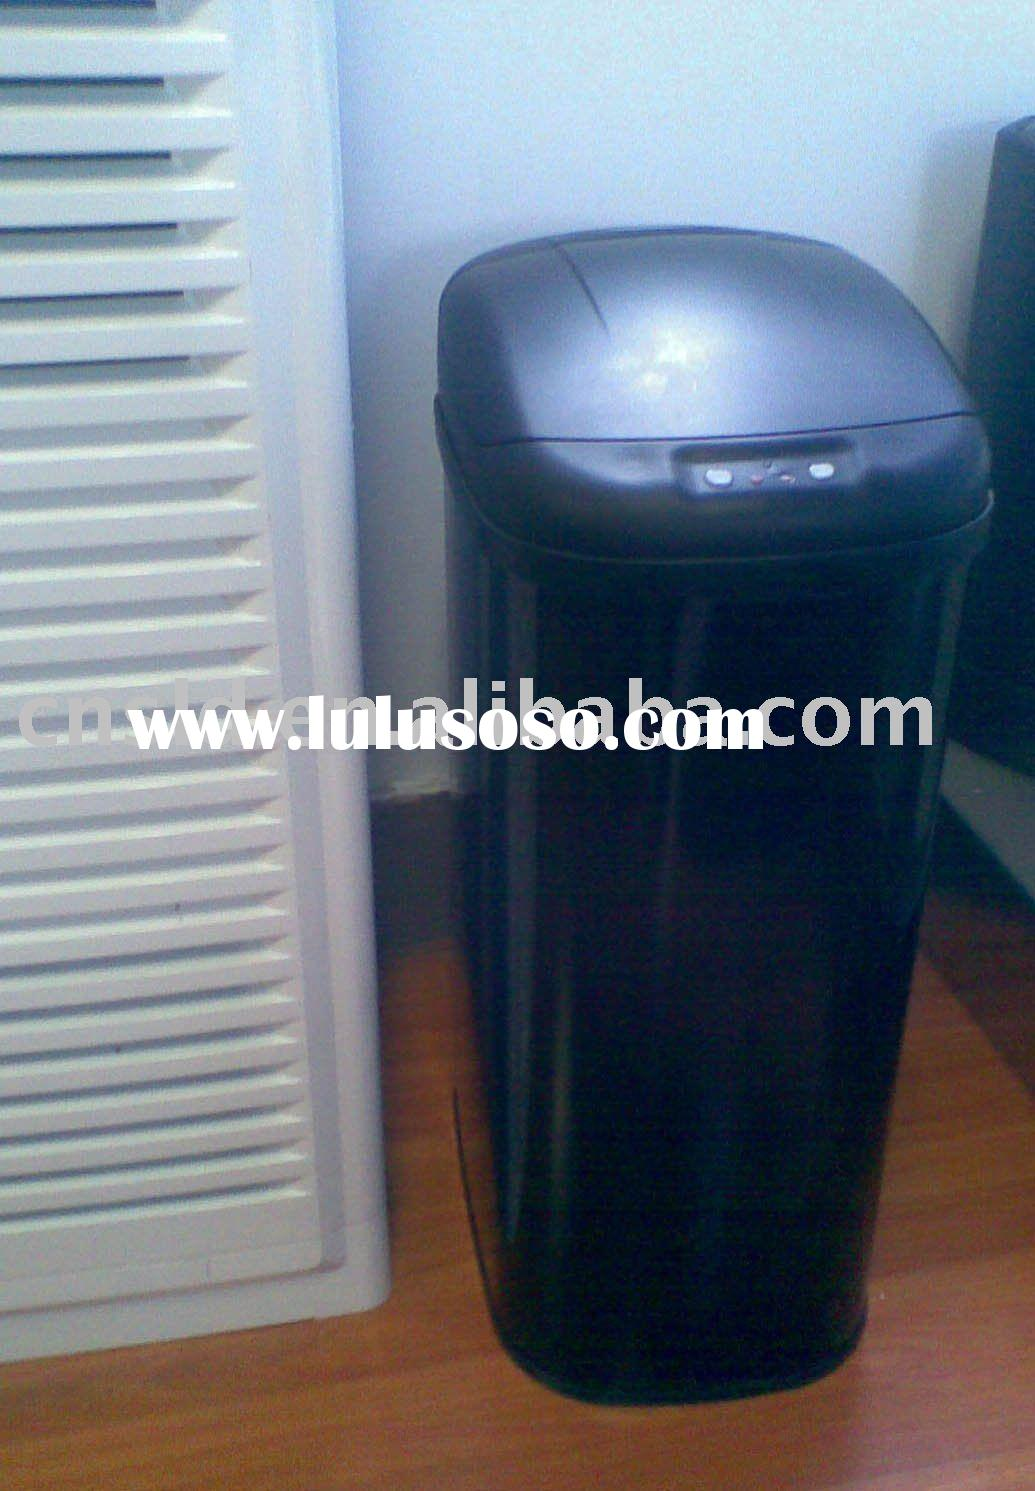 35L Home furniture Electronic Kitchen Auto Stainless Steel Trash can Trash bins